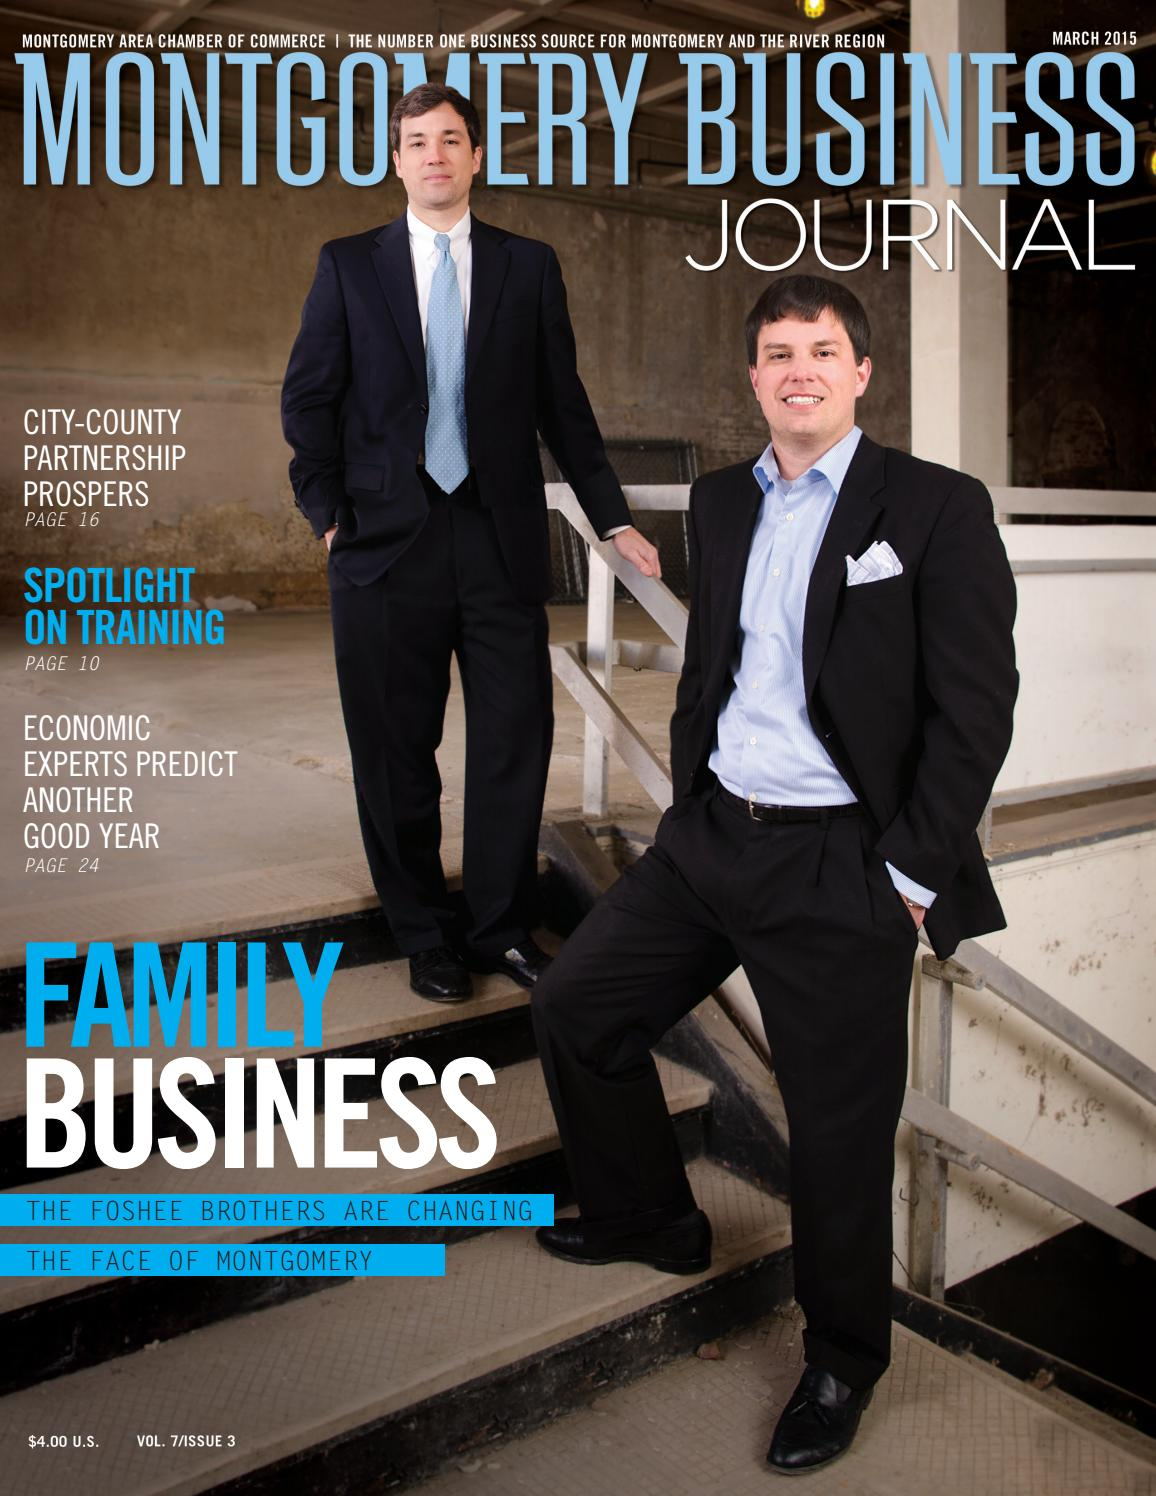 Montgomery Business Journal – March 2015 by Montgomery Area